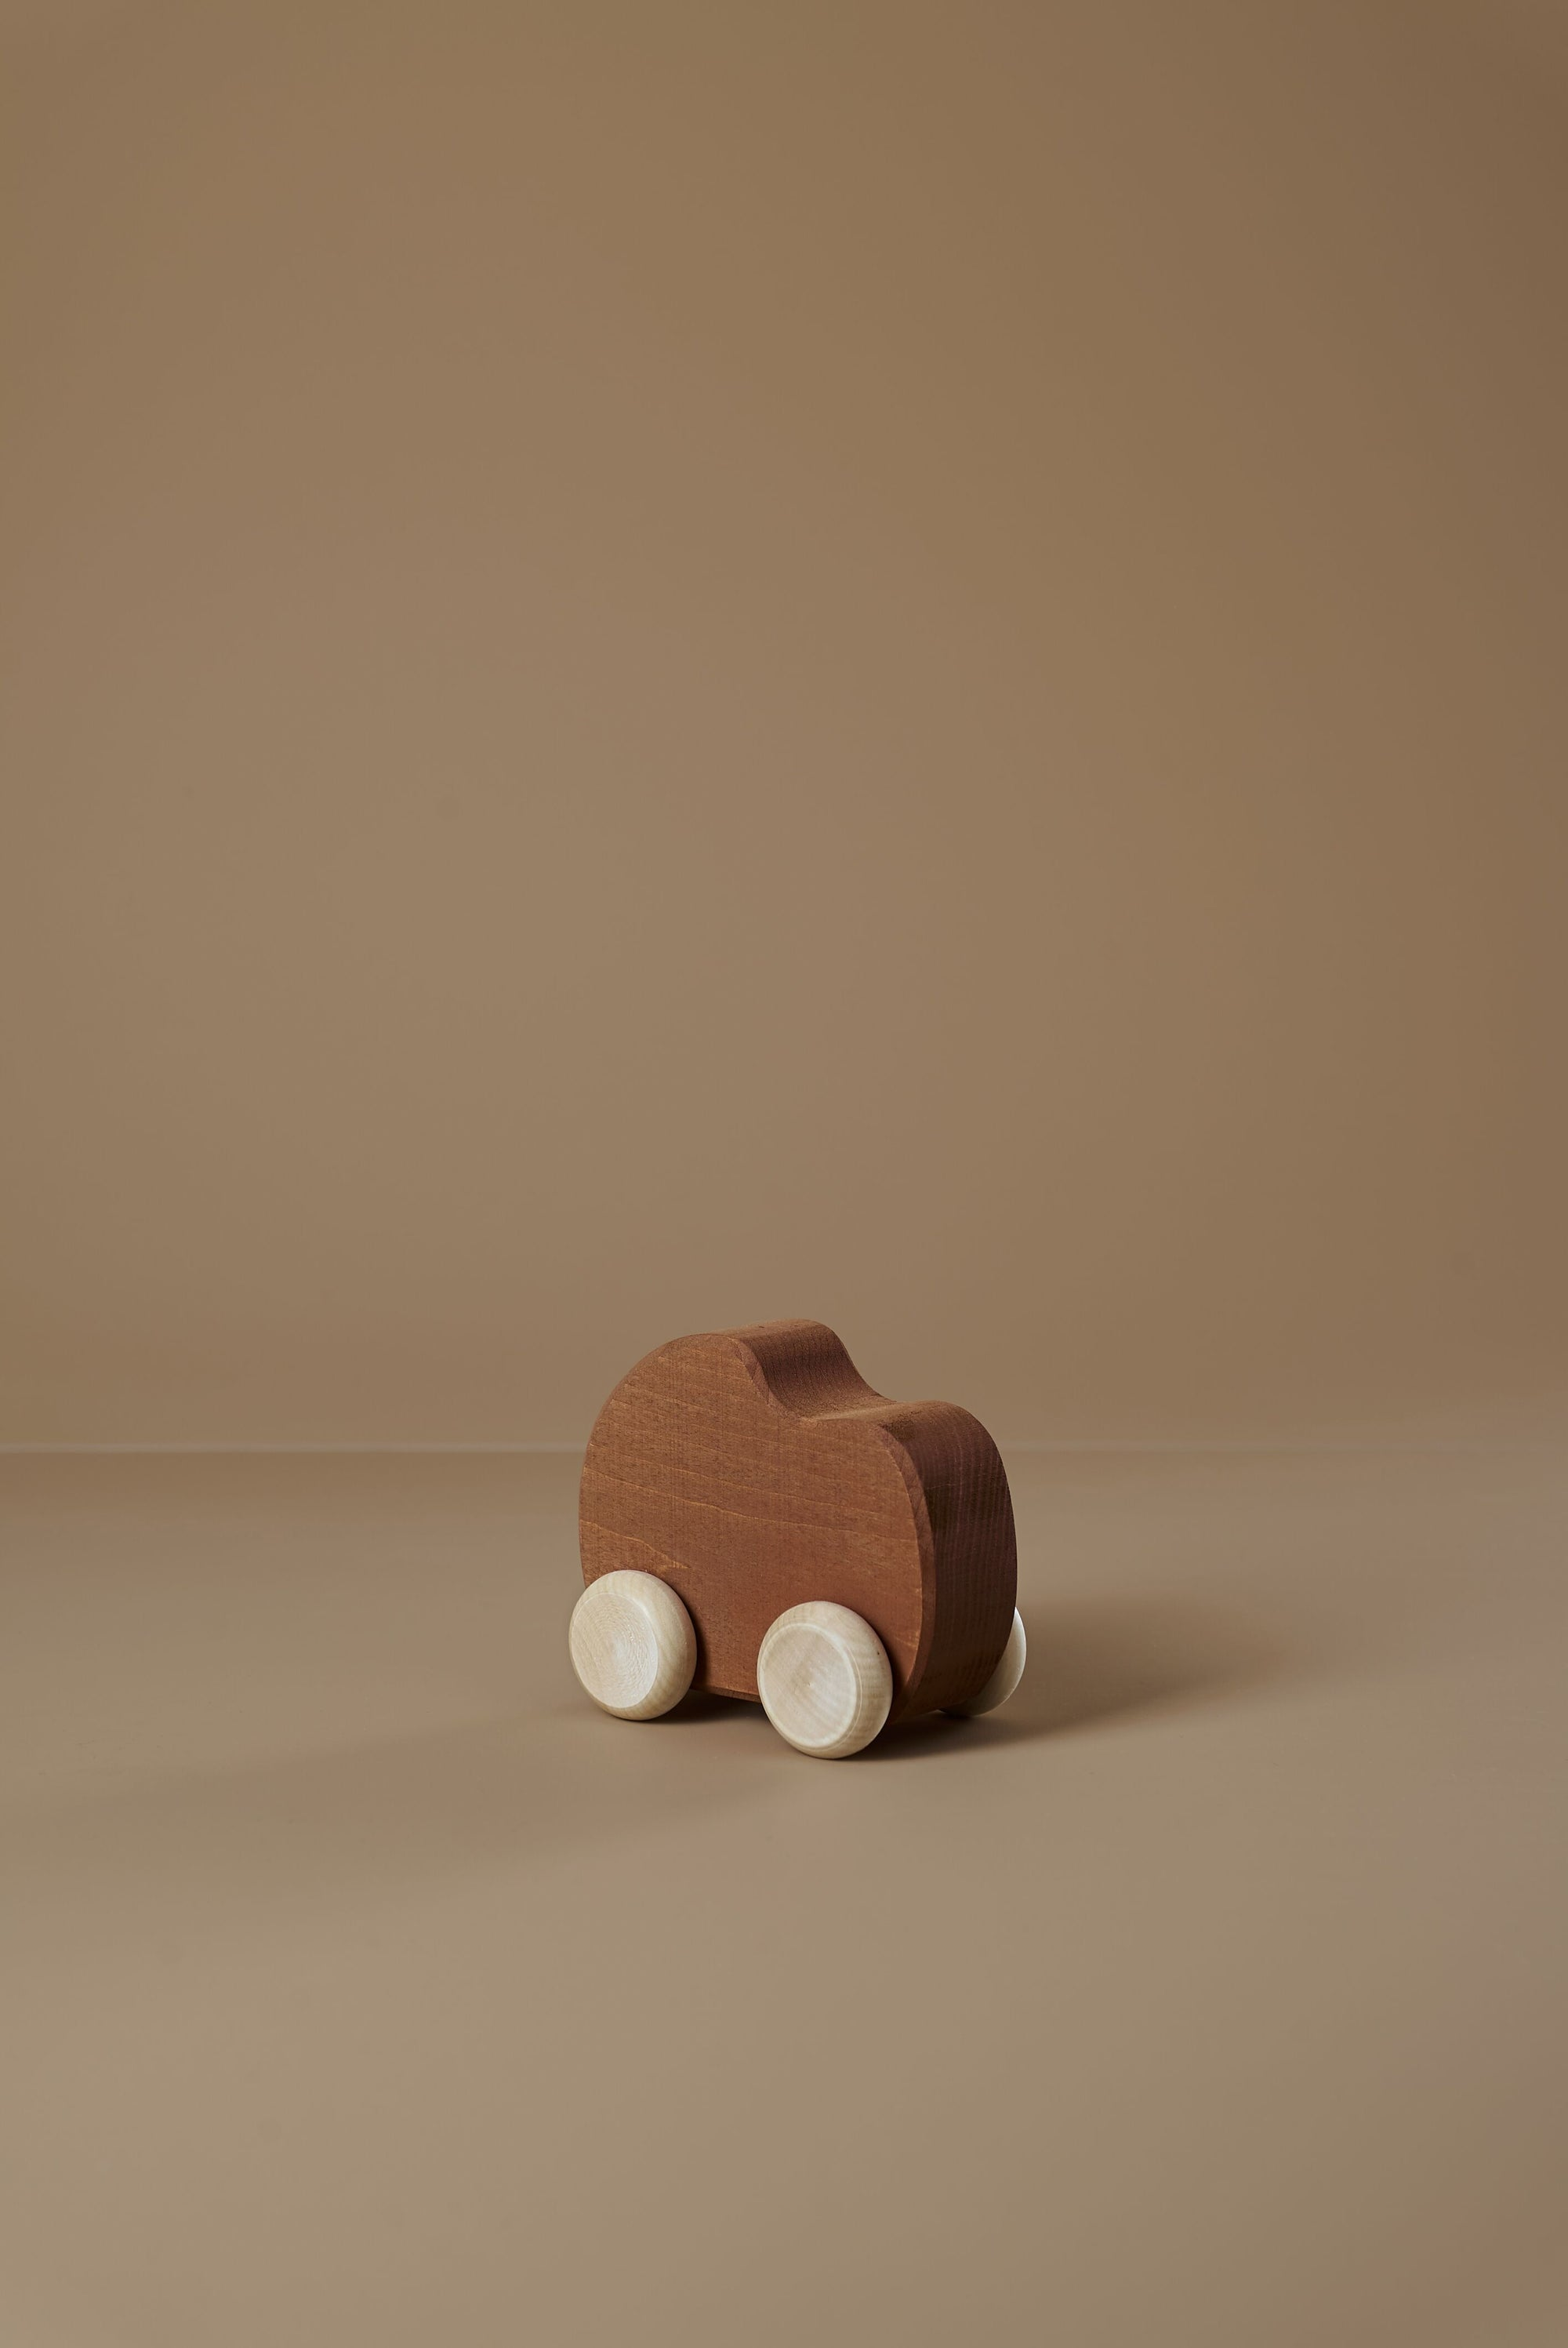 Raduga Grez Wooden Toy Car, Clay